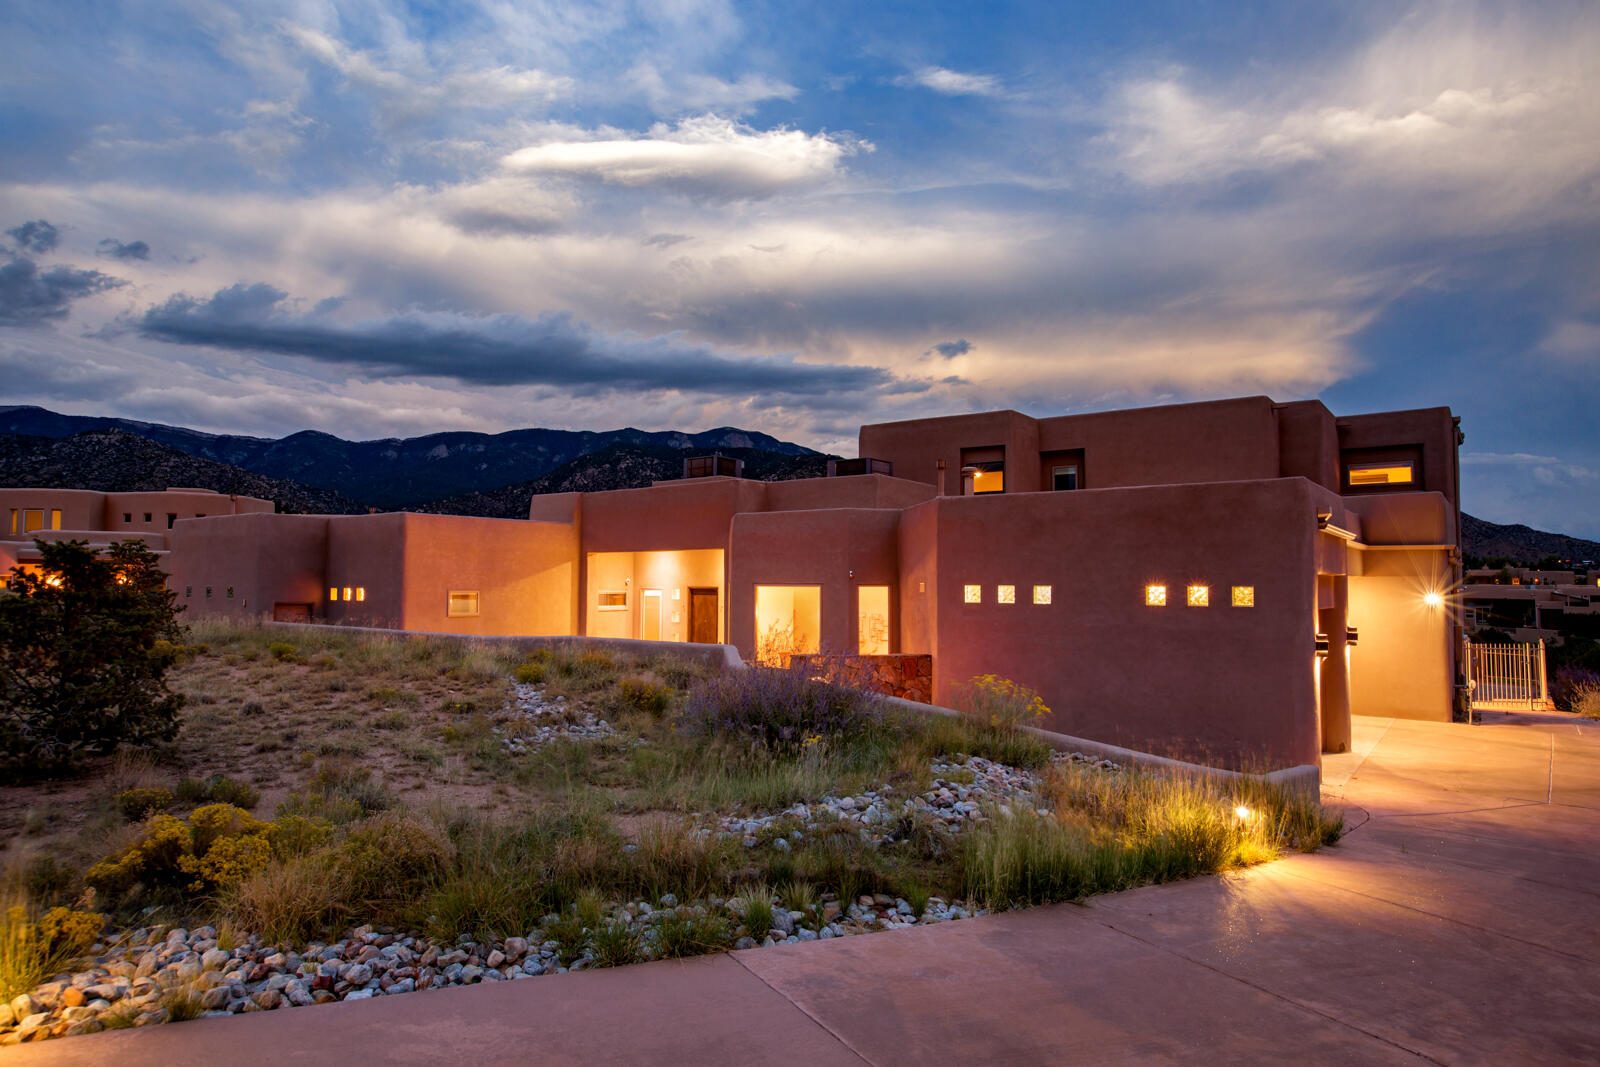 Take a look at this incredible find in High Desert. This custom home was designed to take advantage of the amazing views of the Sandia Mountains, and the city lights. This home features a bright and open floor plan with quality finishes including beautiful wood windows, Alder custom cabinetry, rich granite, wood interior doors, stacked stone, and porcelain flooring. The primary suite and one guest bedroom are on the main level, and upstairs there are 2 more bedrooms, a loft and an office. Enjoy outdoor living from the large patio with a water feature. Security system with cameras, an audio system, and owned solar convey! Enjoy the best of the High Desert Lifestyle with great hiking, walking and biking trails immediately within the community, and shopping, dining & entertainment nearby.